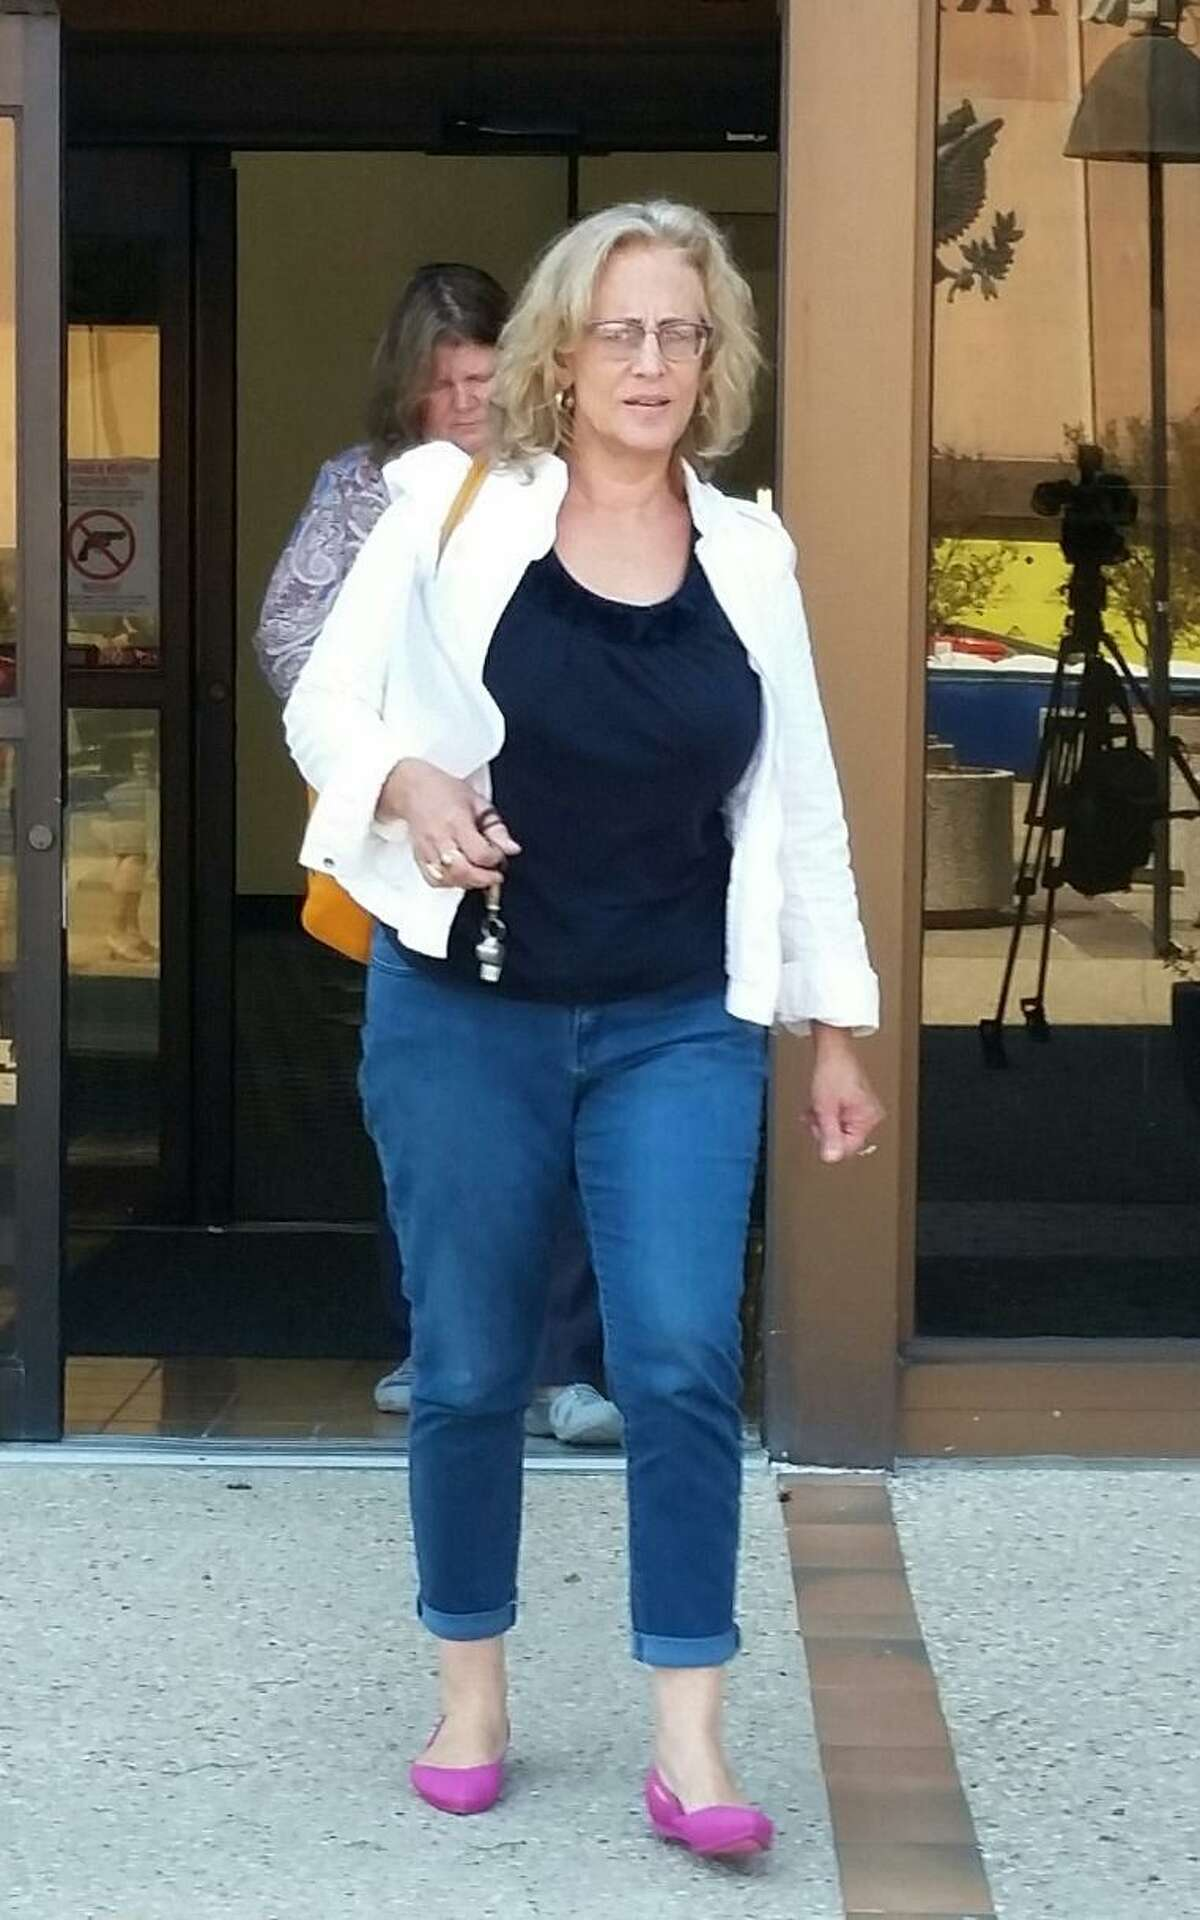 """Jodi Mann, who describes herself as """"Conspiracy Granny,"""" leaves San Antonio's federal courthouse on Tuesday, May, 29, 2018, after her boyfriend, Robert Mikell Ussery, was denied bail. Ussery was arrested on a gun charge in the aftermath of the pair's confrontation in March with the pastor of the First Baptist Church of Sutherland Springs. Ussery and Mann claim the November massacre, in which 26 churchgoers were killed by a gunman, is a """"government hoax."""""""